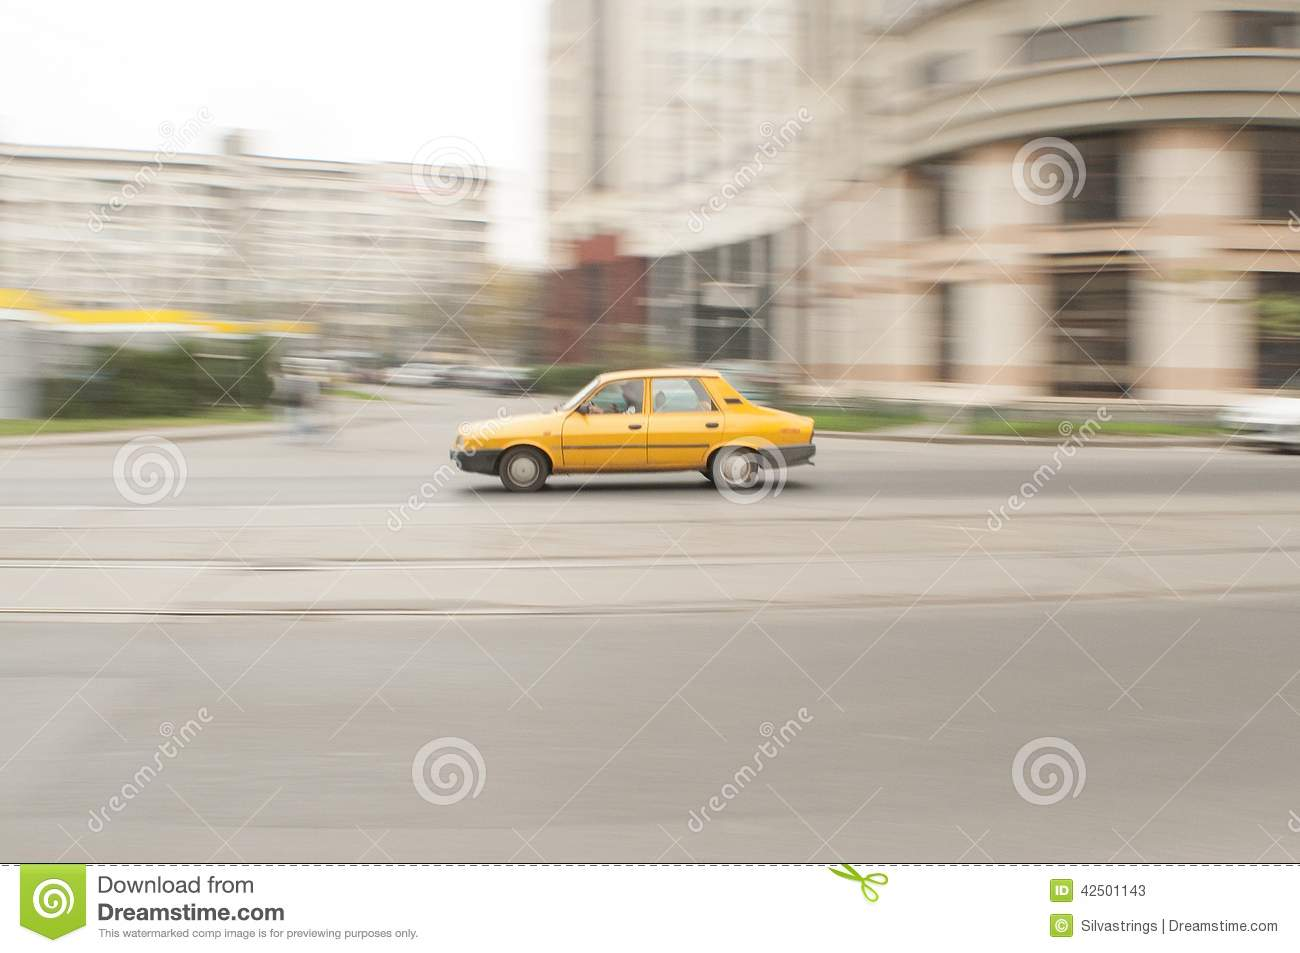 Yellow car blurred background